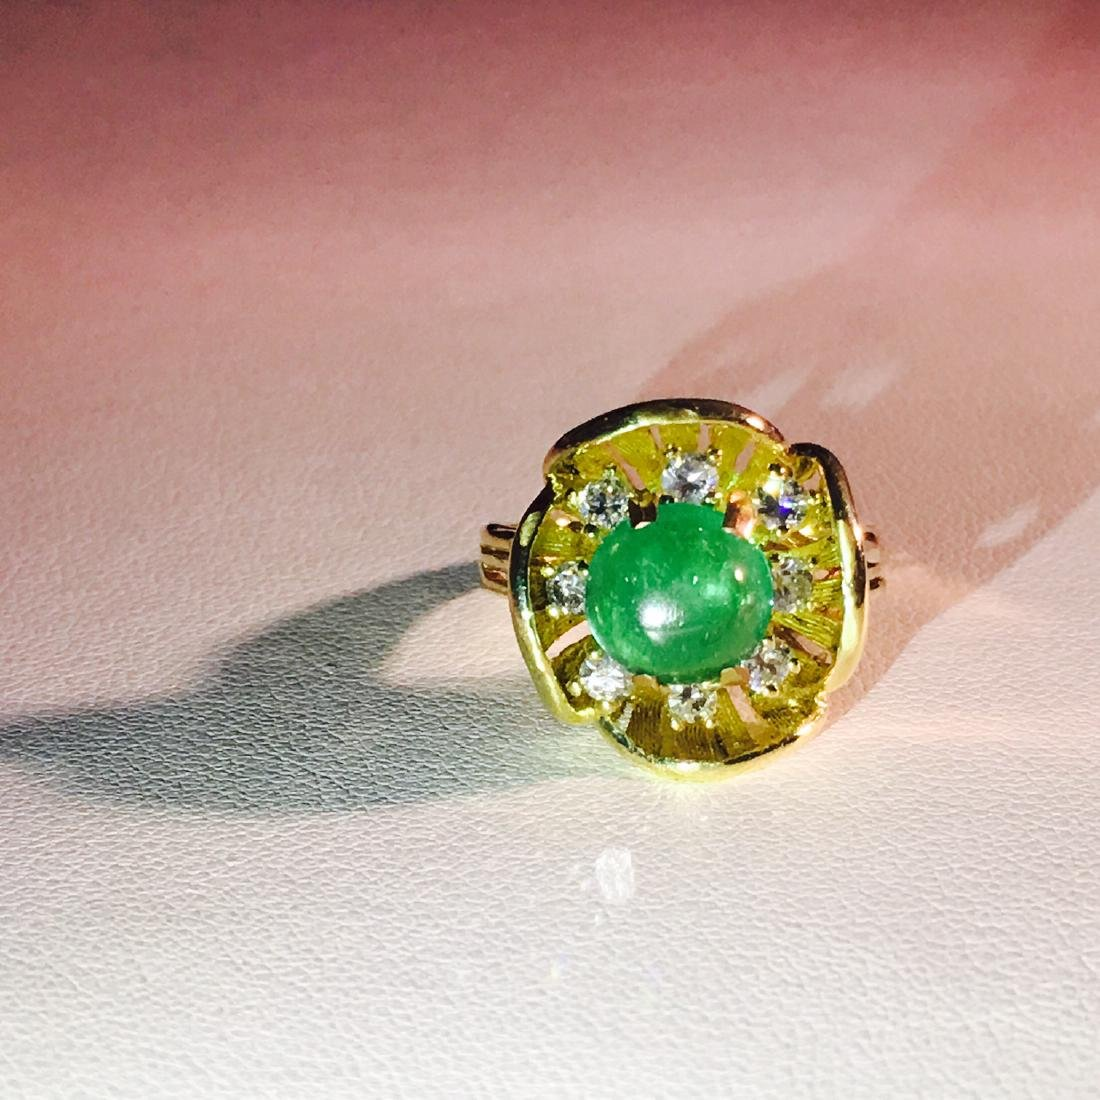 Vintage 18K Gold, 2.90 CT Diamond And Emerald Ring - 3